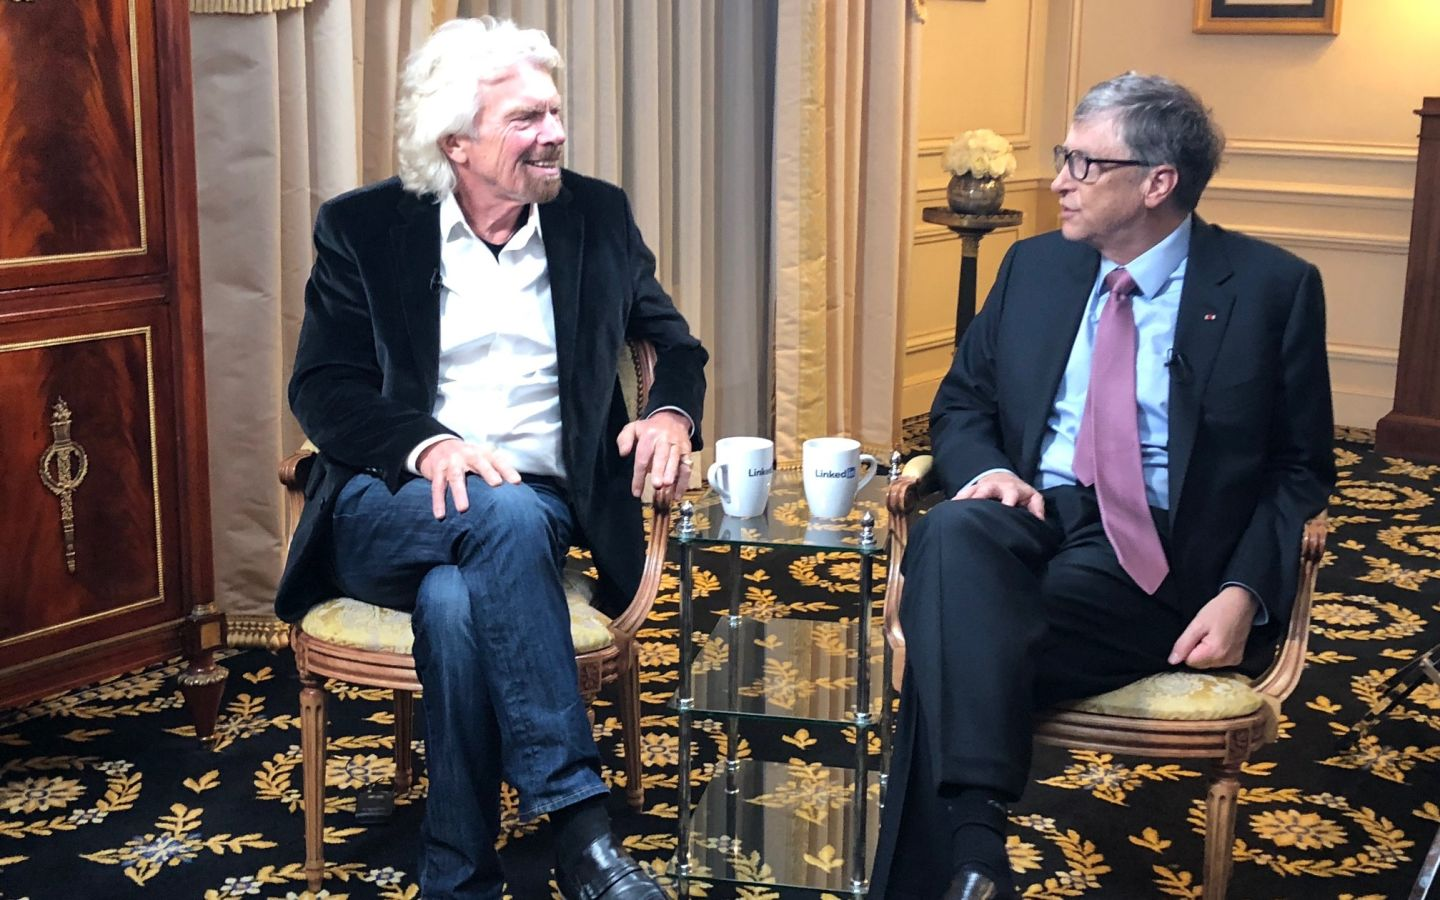 Richard Branson with Bill Gates